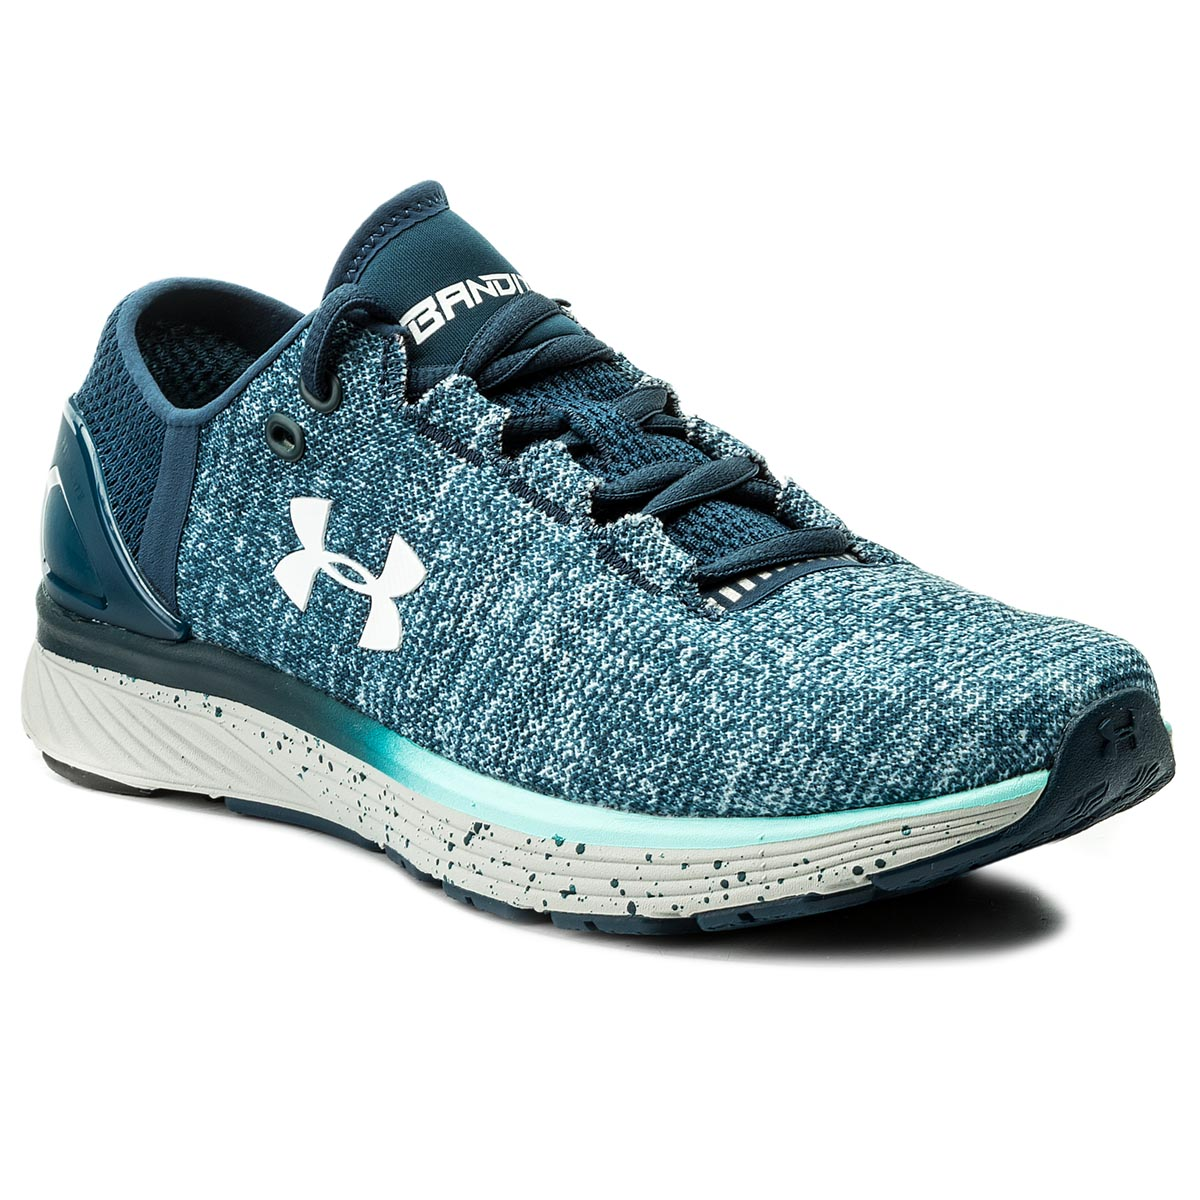 Buty UNDER ARMOUR - Ua W Charged Bandit 3 1298664-918 Tui/Bif/Wht